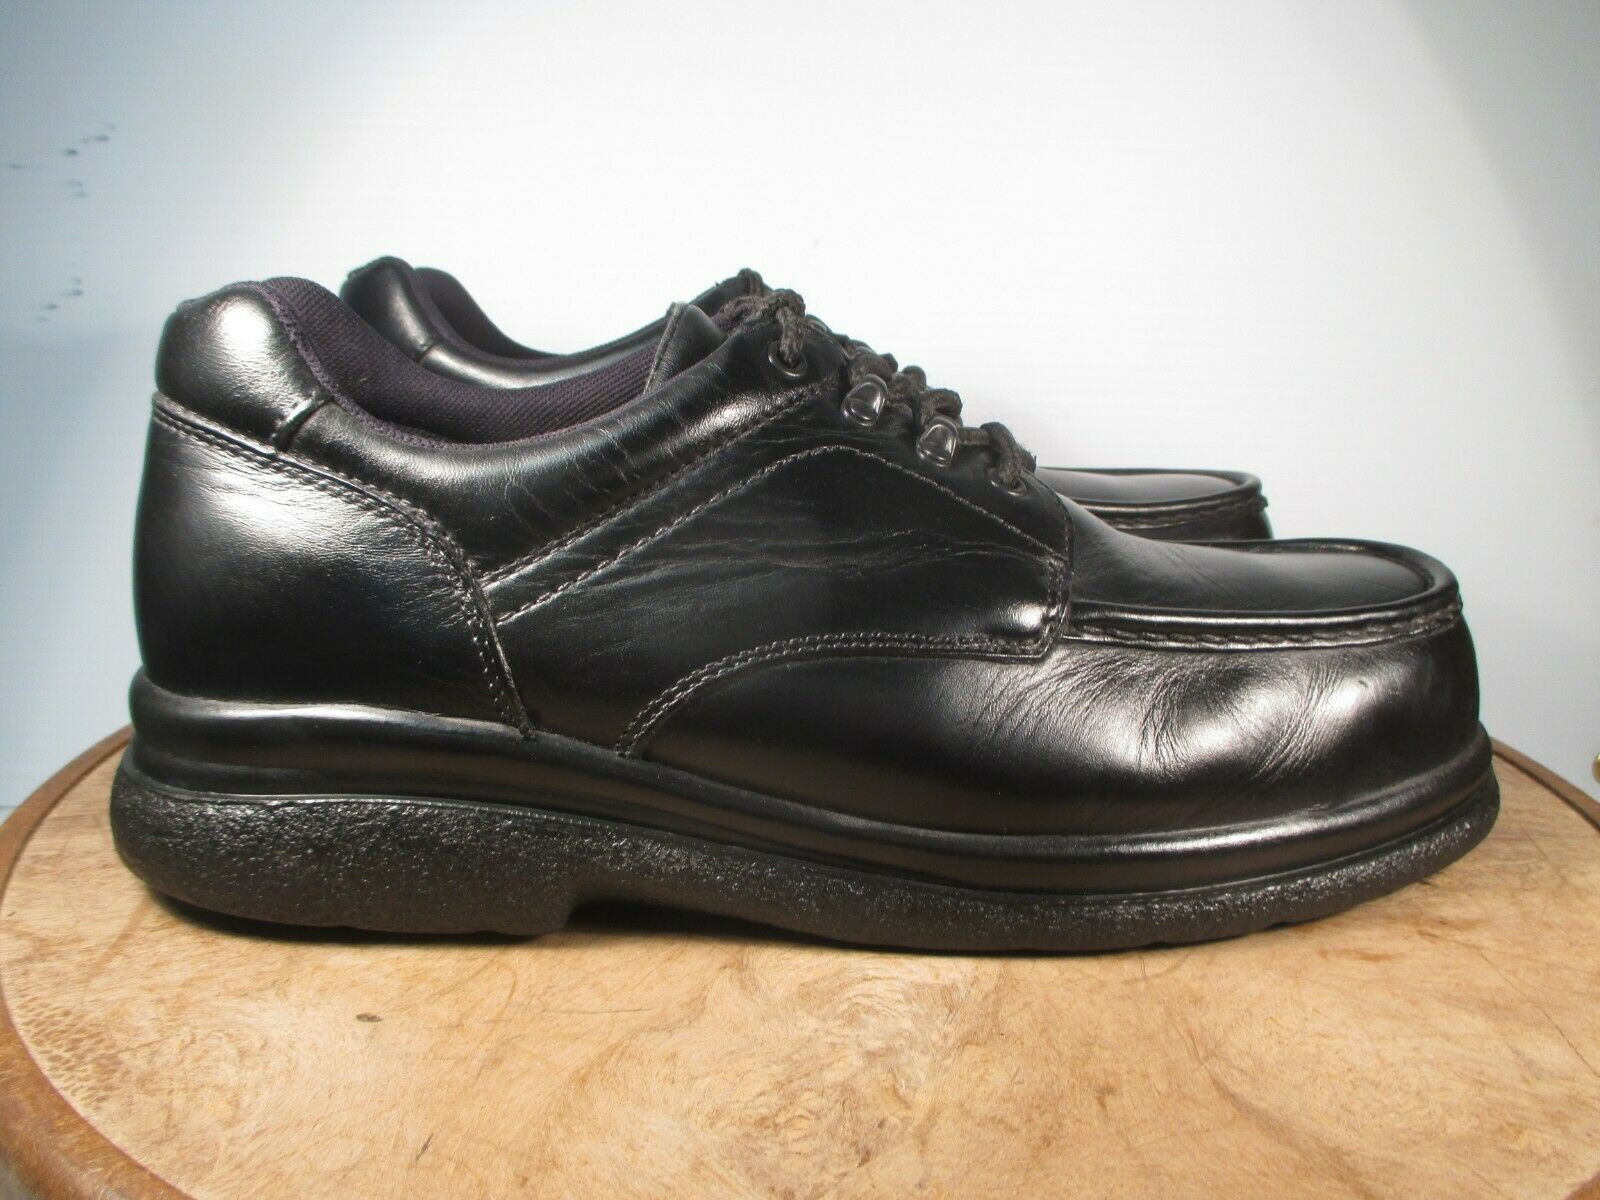 Red Wings SD Safety Toe Black Leather Oxford Work shoes USA Size 12 D medium